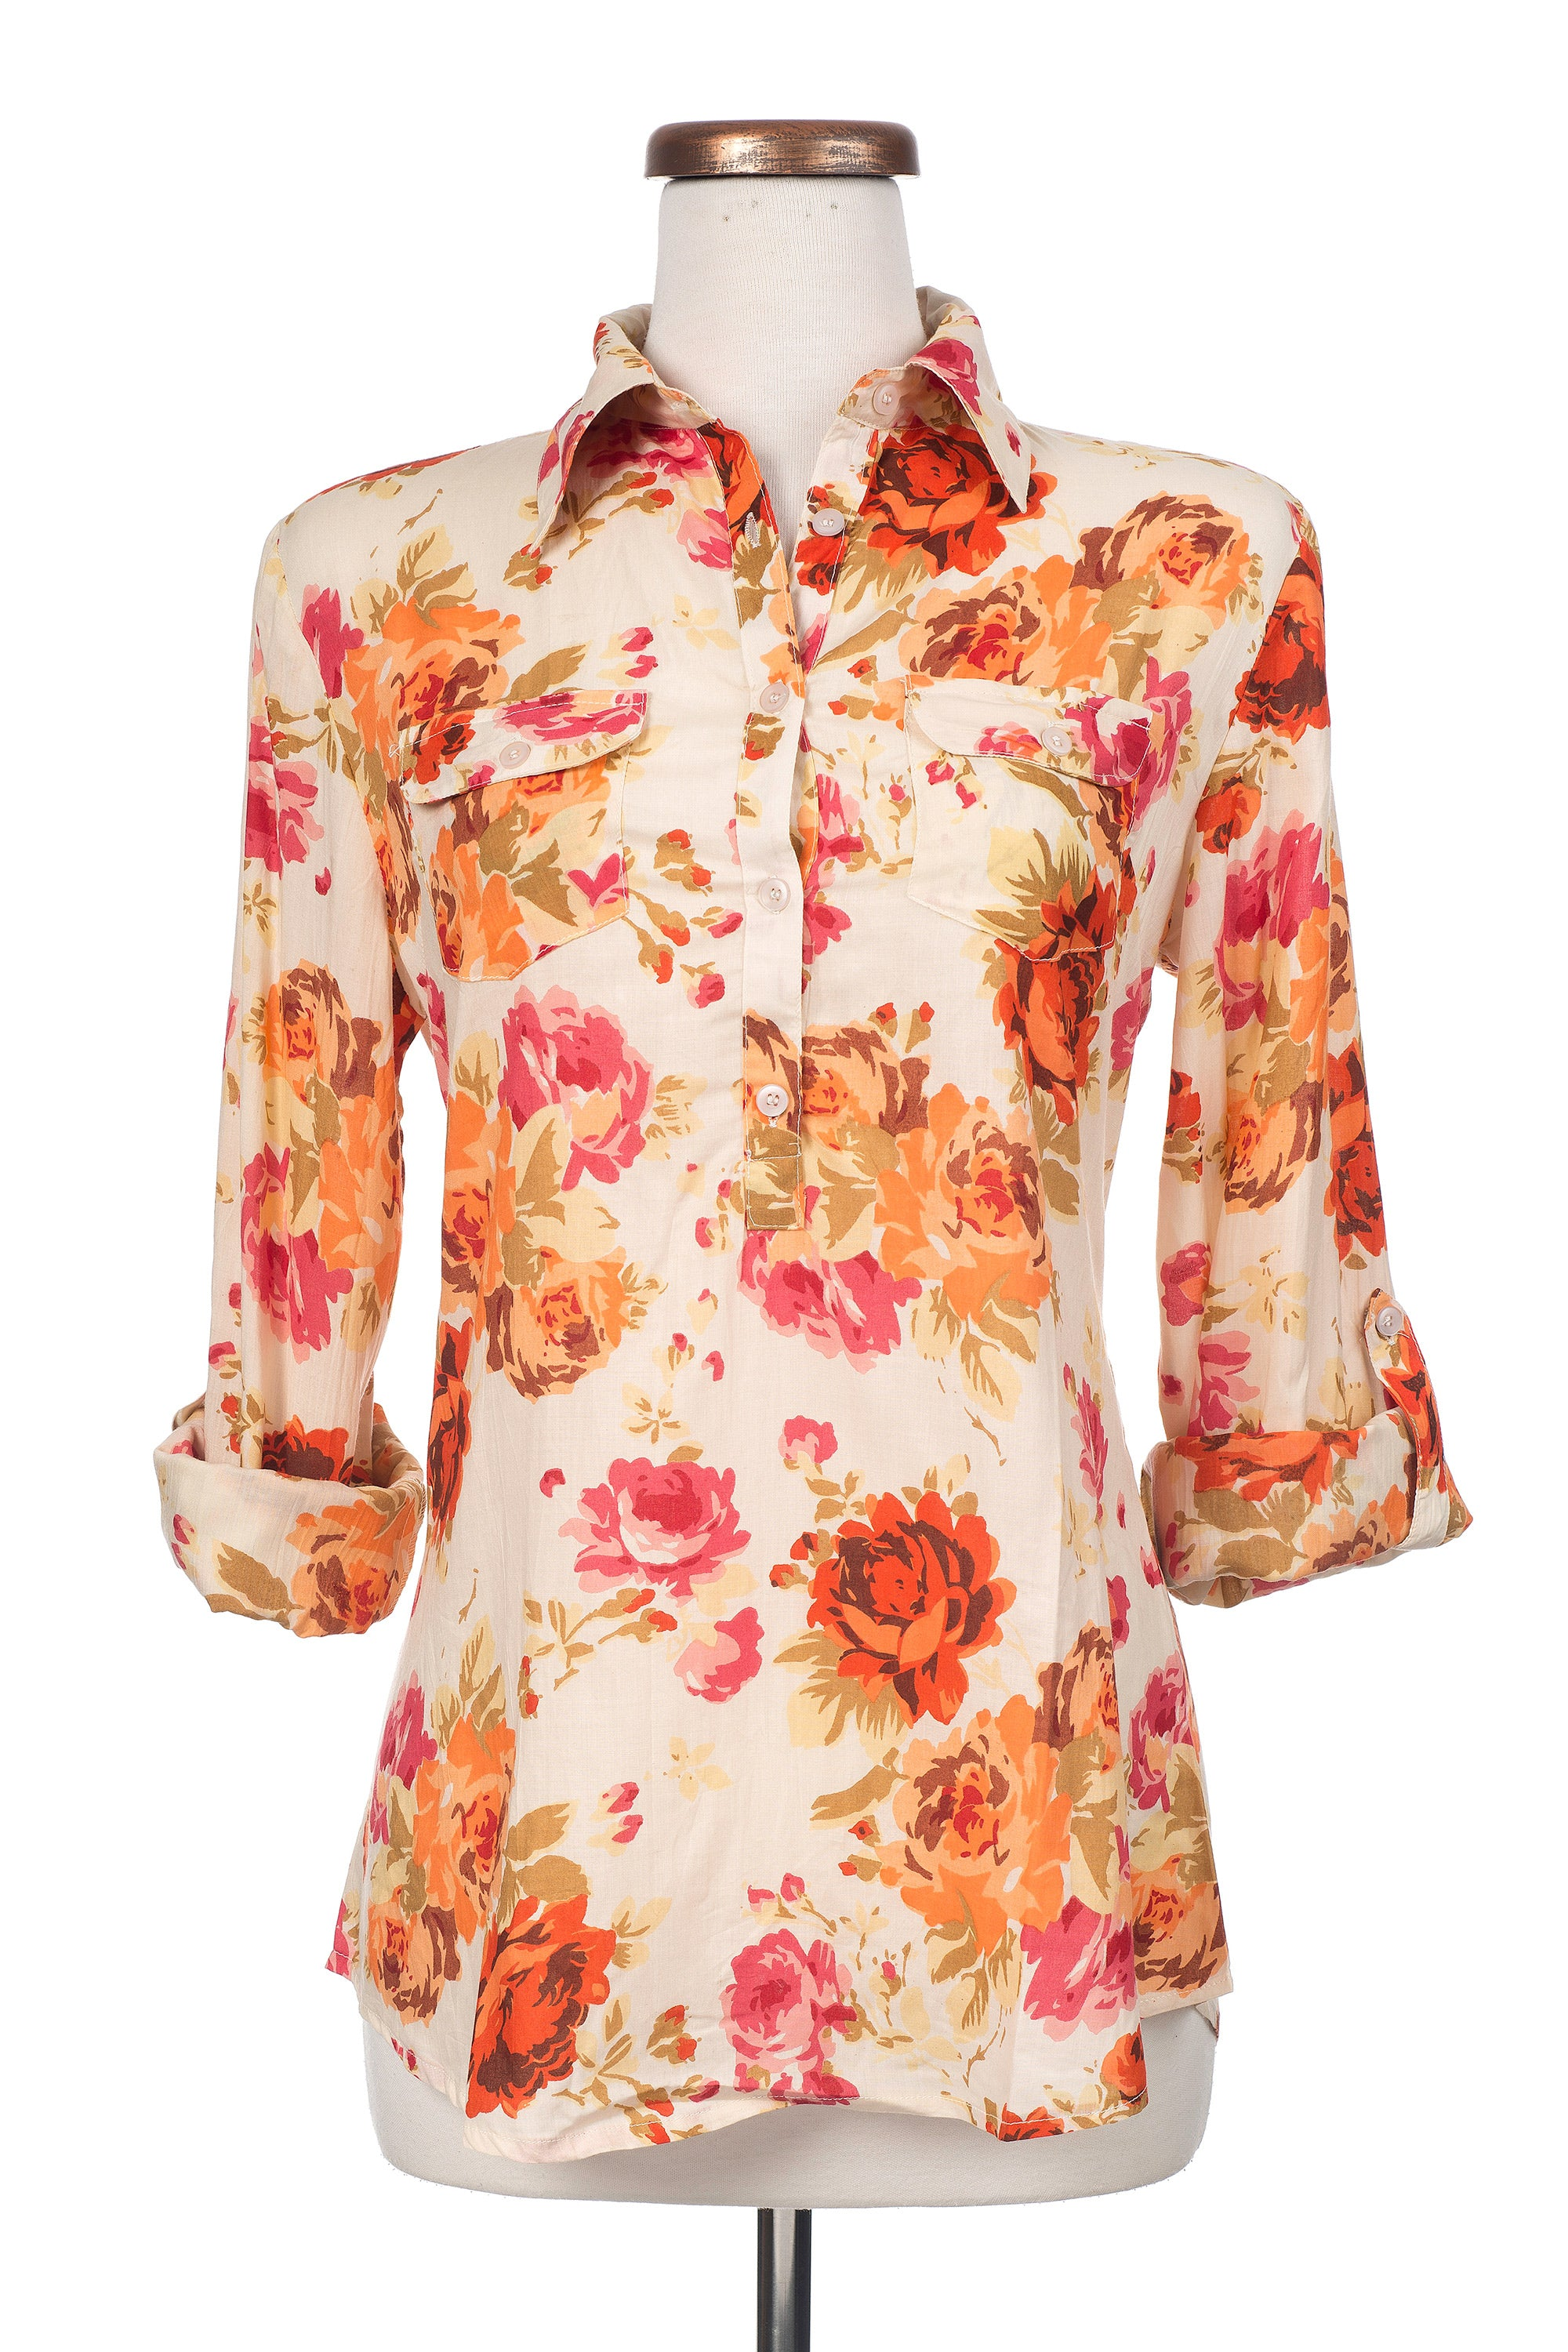 Type 3 Fall Floral Top